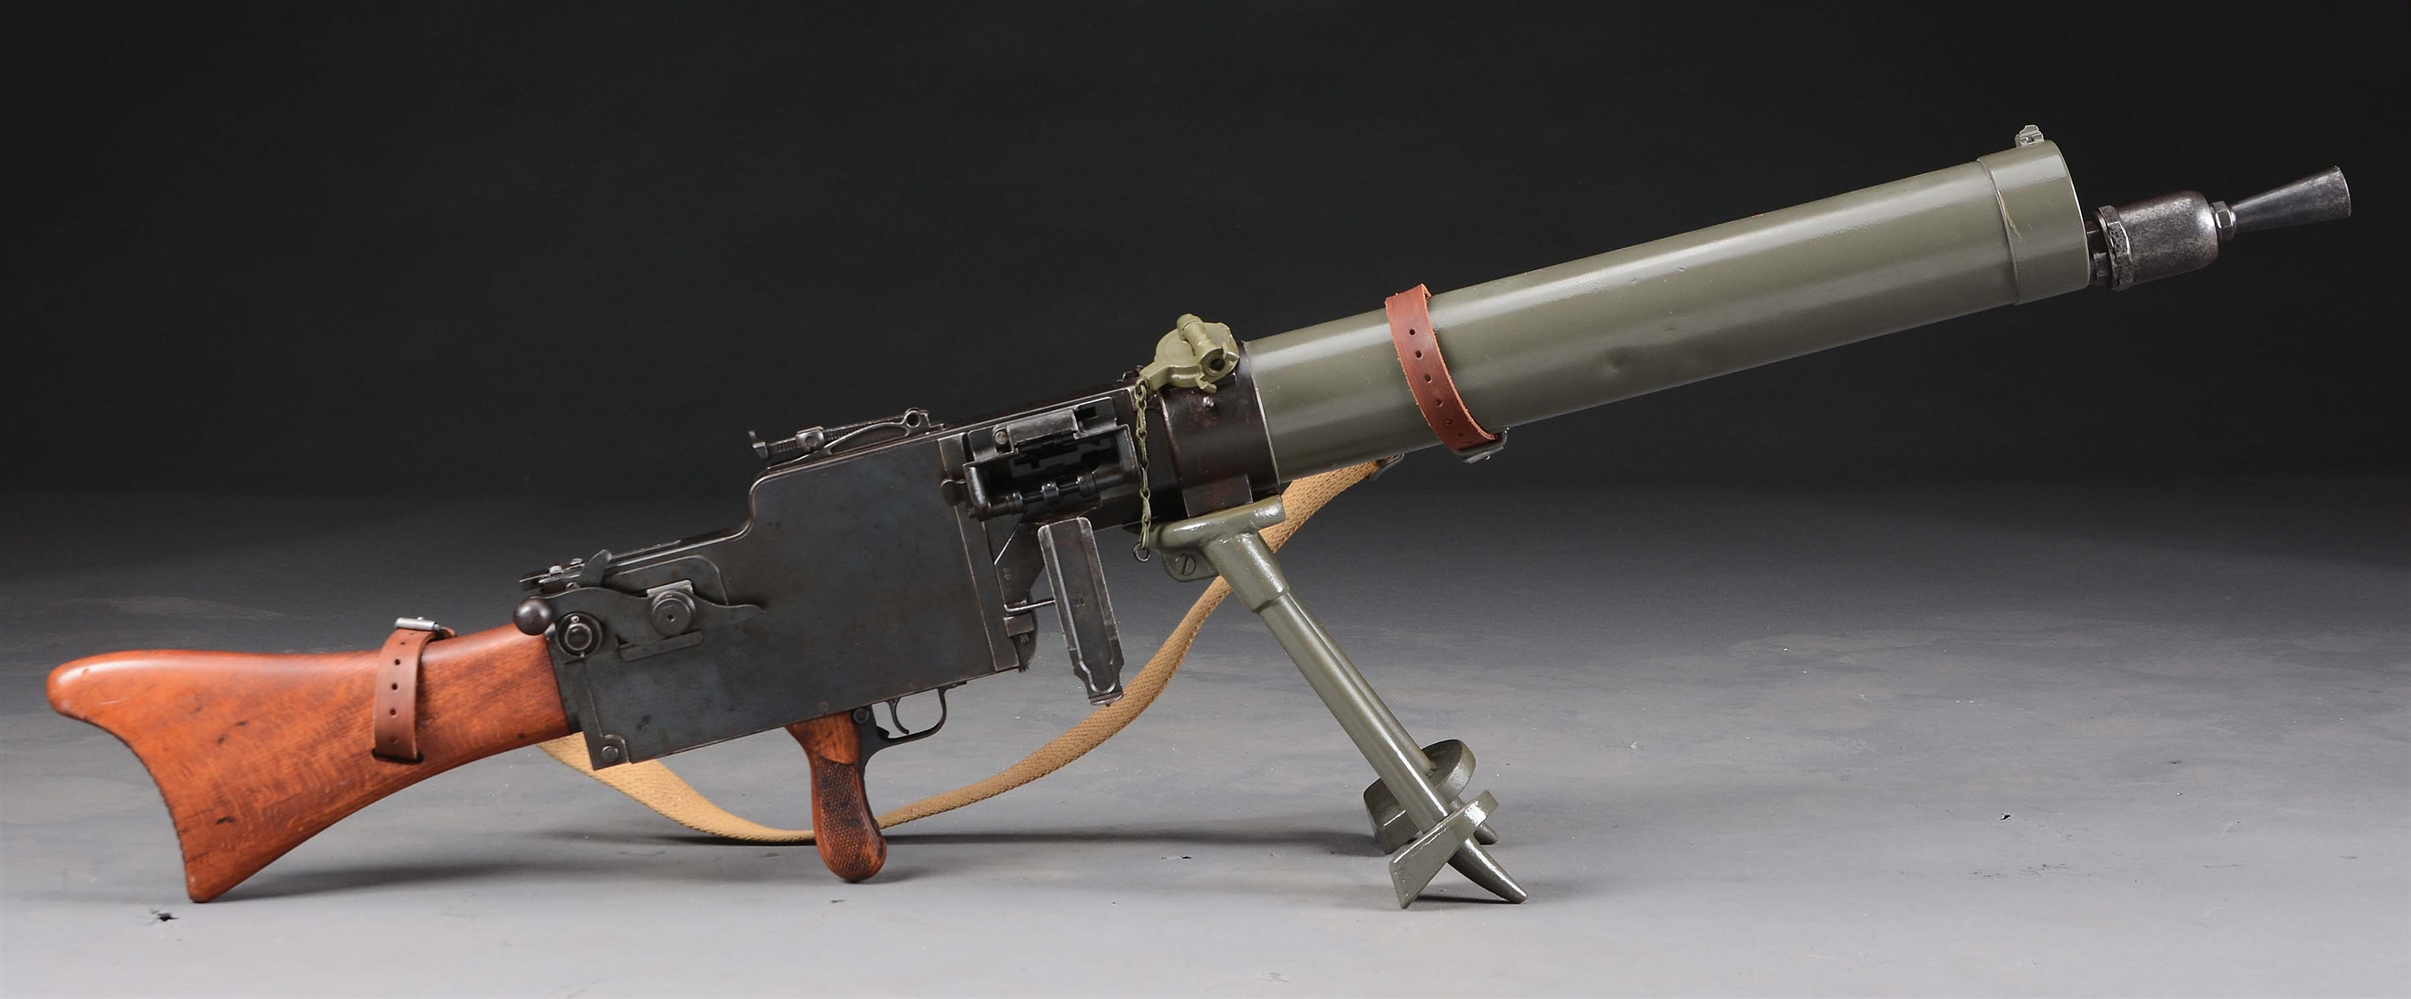 (N) WELL ACCESSORIZED ATTRACTIVE AND DESIRABLE GERMAN WW1 MG 08/15 MAXIM MACHINE GUN (CURIO AND RELIC)